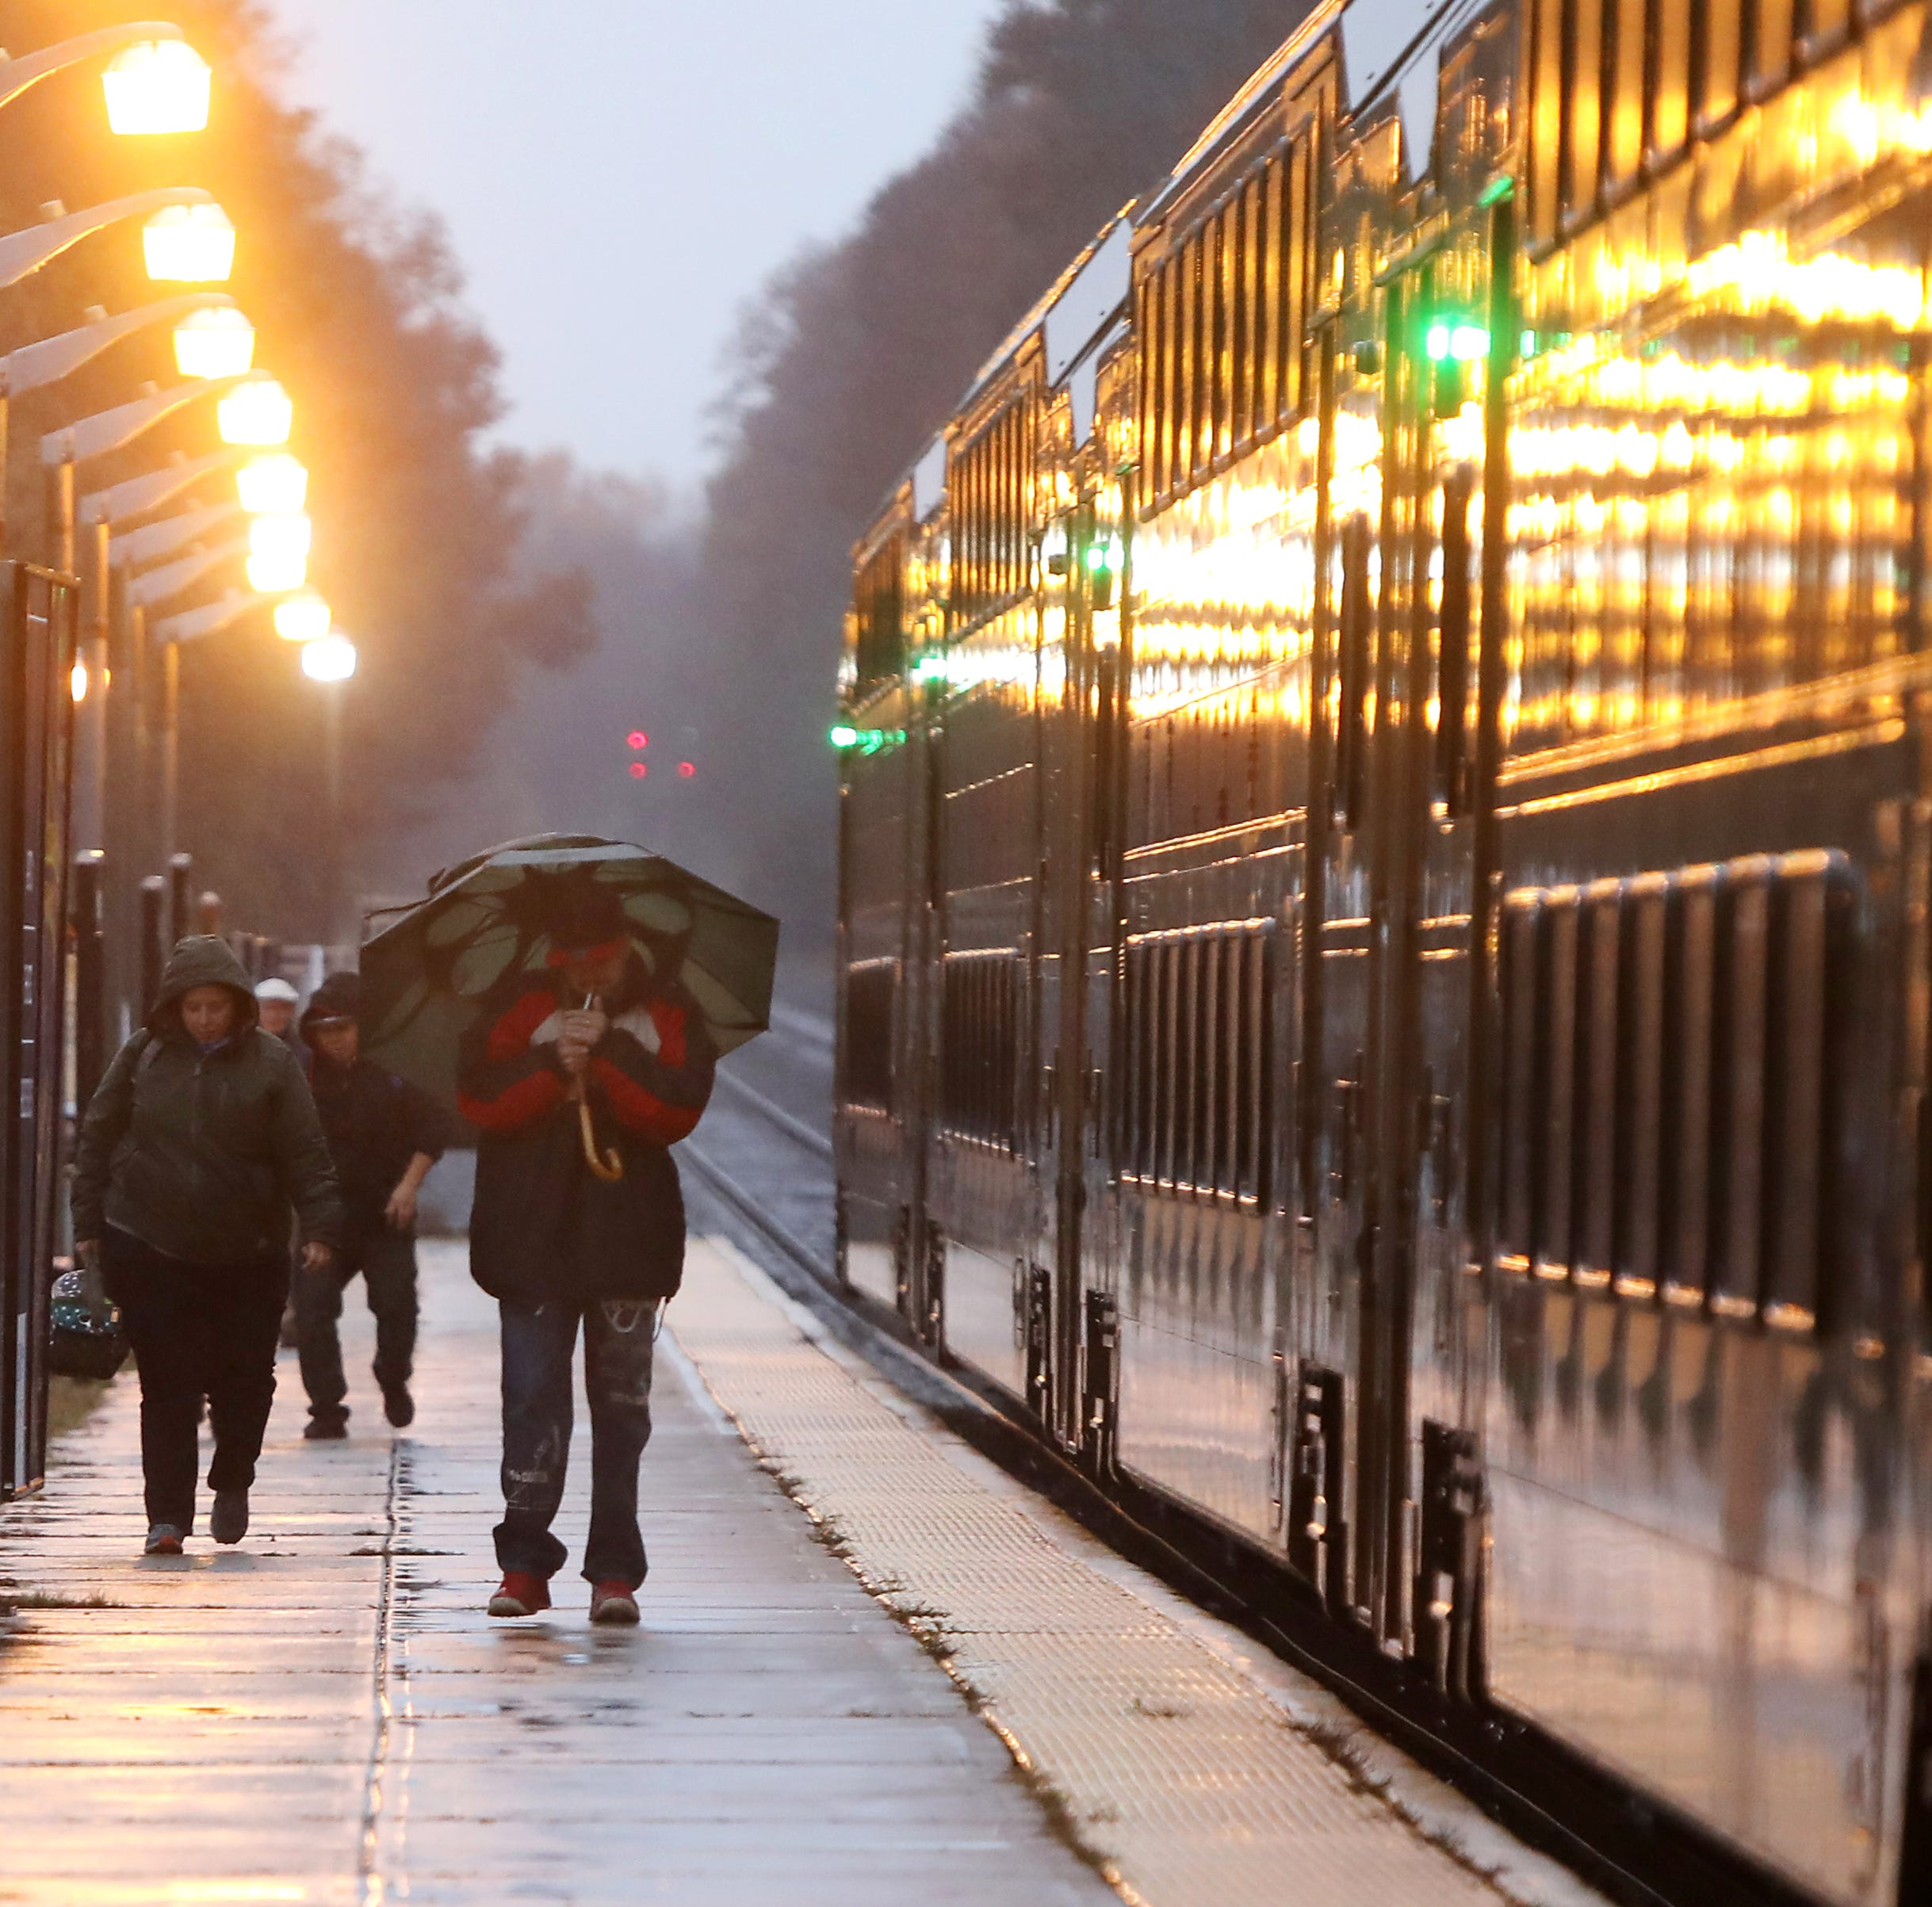 NJ weather: Heavy rain in forecast for morning commute; snow unlikely